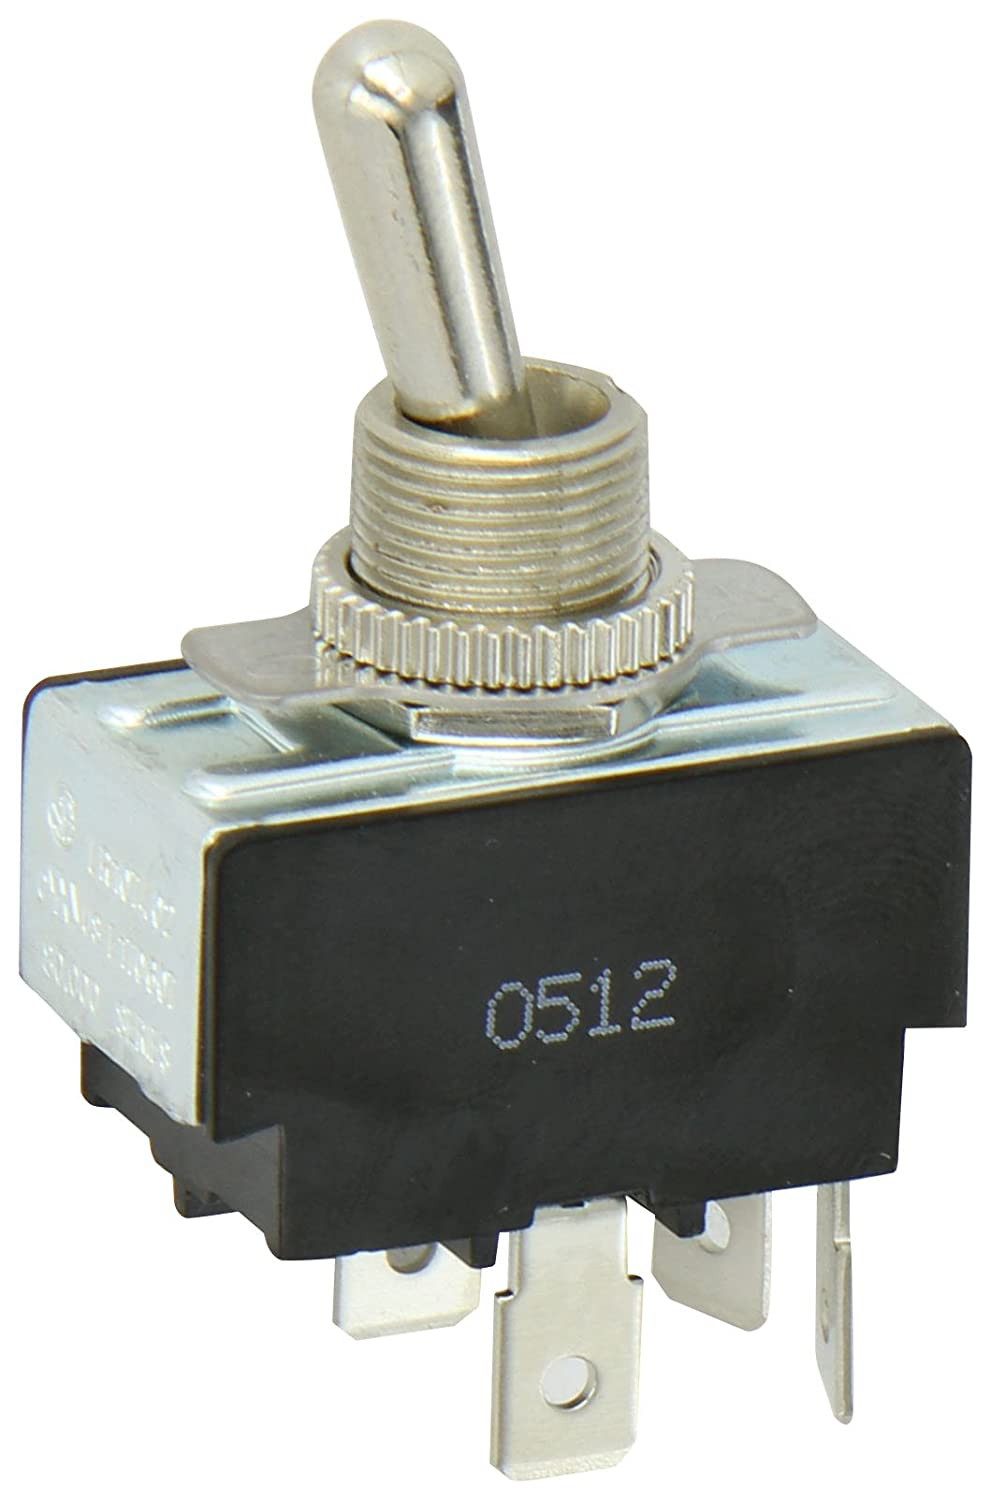 NSi Industries, LLC Toggle Switch, Maintained Contact and Multiple Pole, On Off Circut Function, DPST, Brass/Nickel Actuator, 15/10 amps at 125/250 VAC, 0.250 Quikconnect Connection